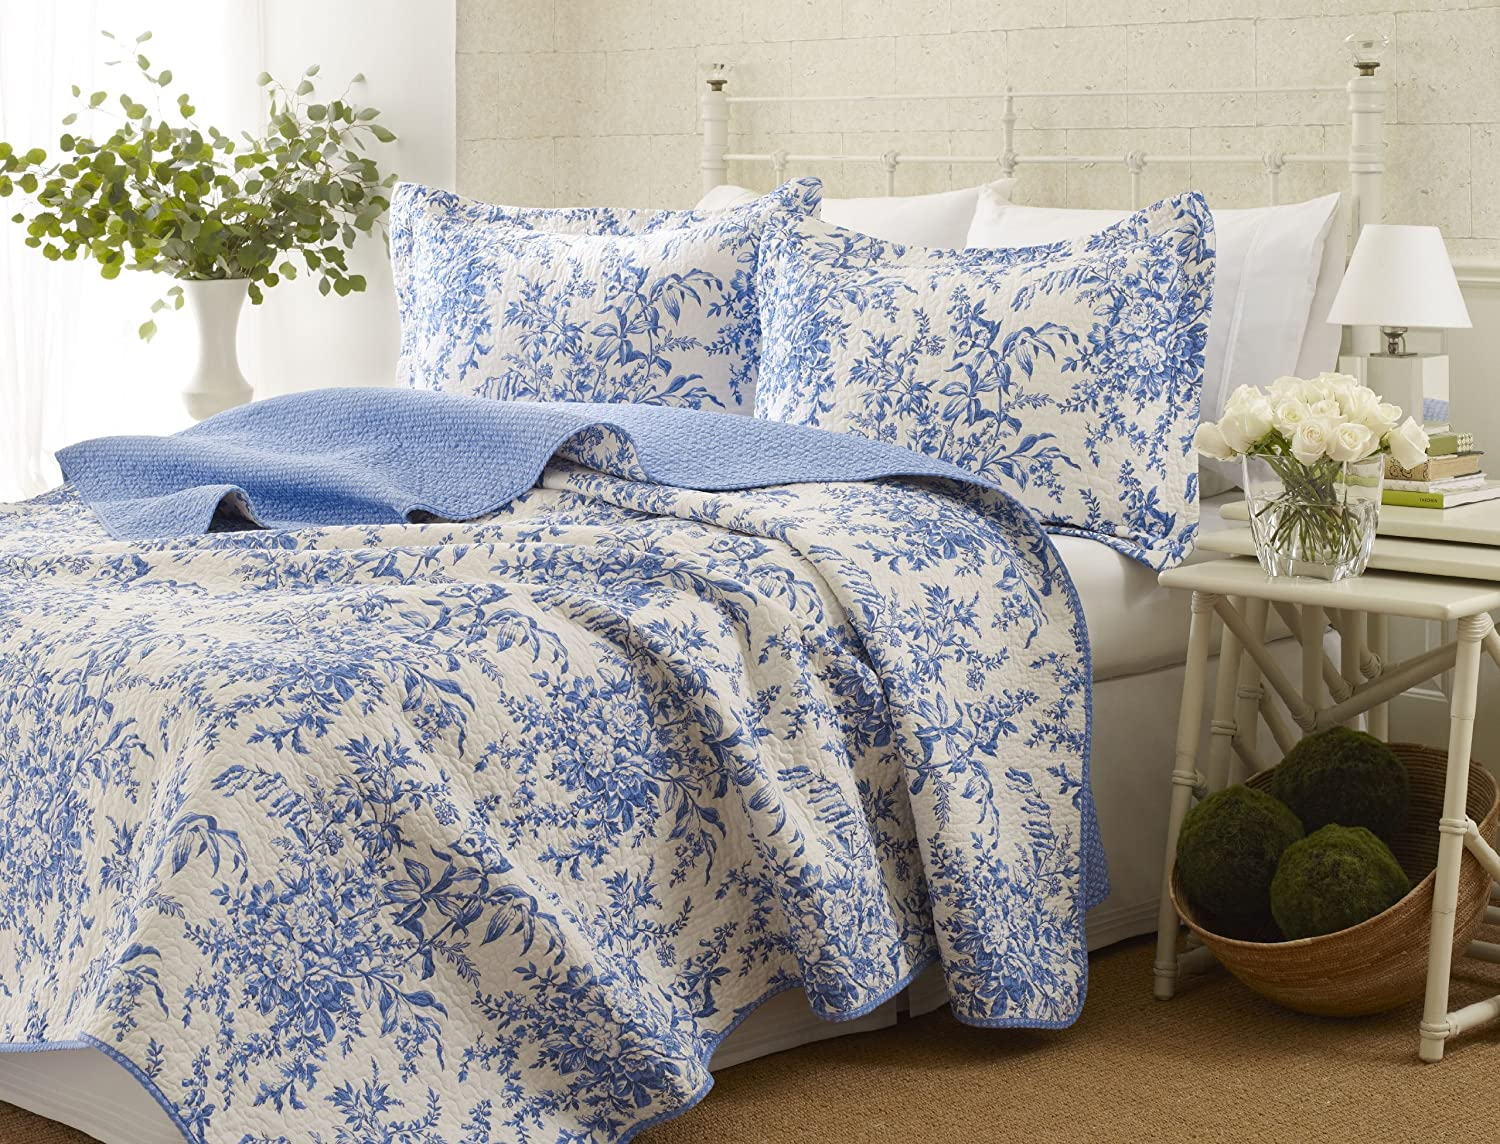 Amazon.com: Laura Ashley Bedford Cotton Reversible Quilt Set, King ... : laura ashley king quilt - Adamdwight.com